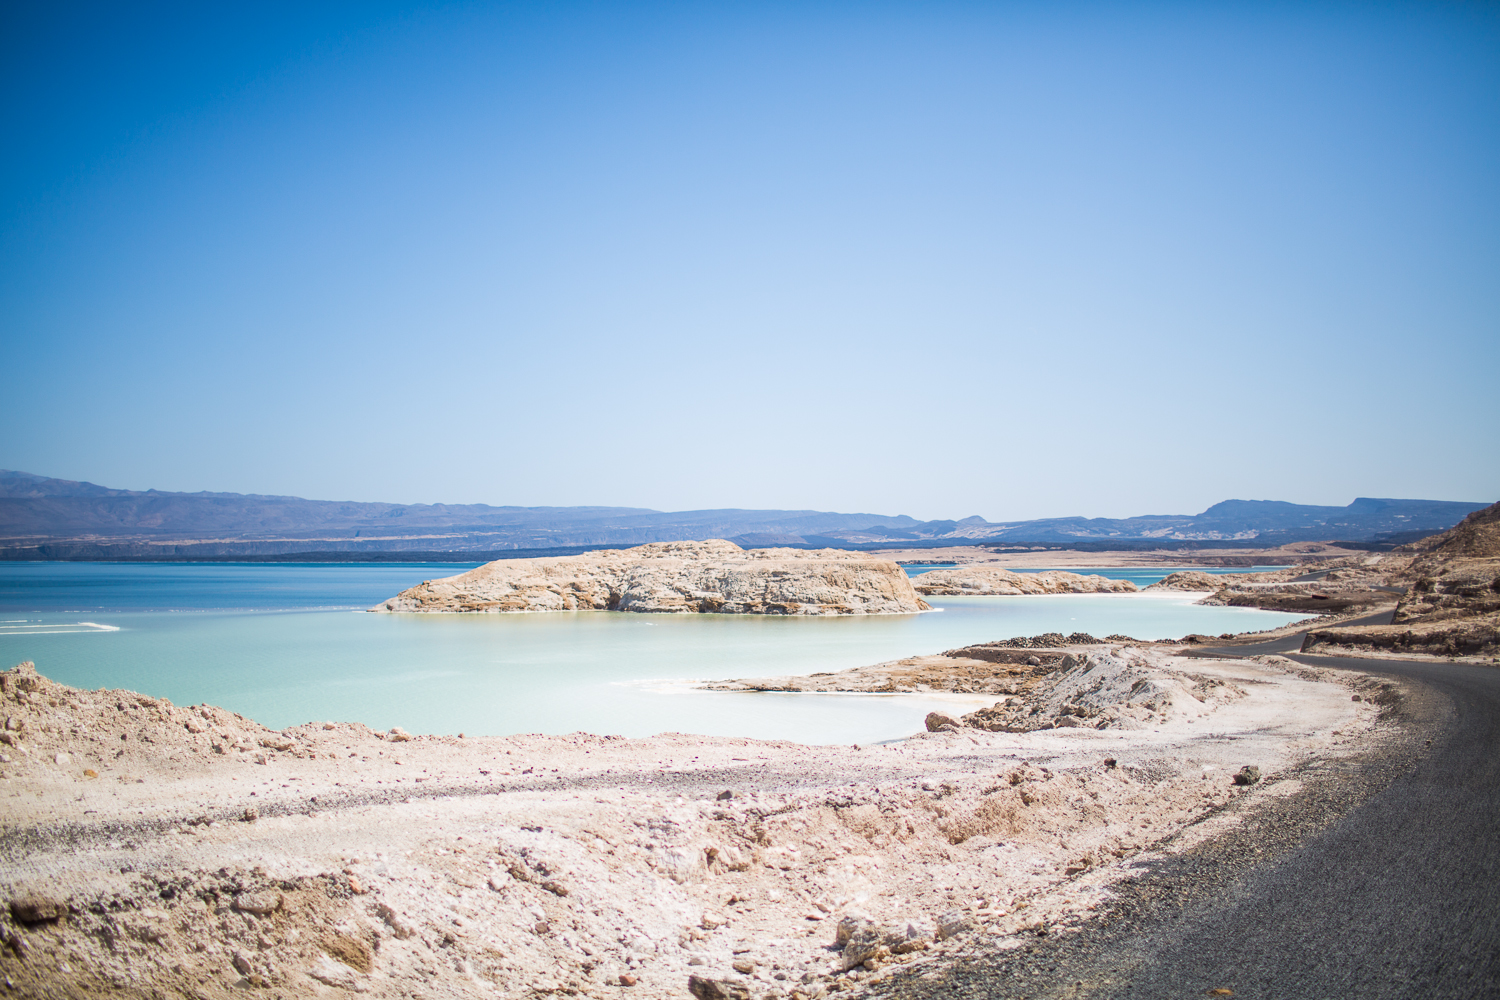 Lac Assal, the saltiest lake in the world & the lowest point in africa